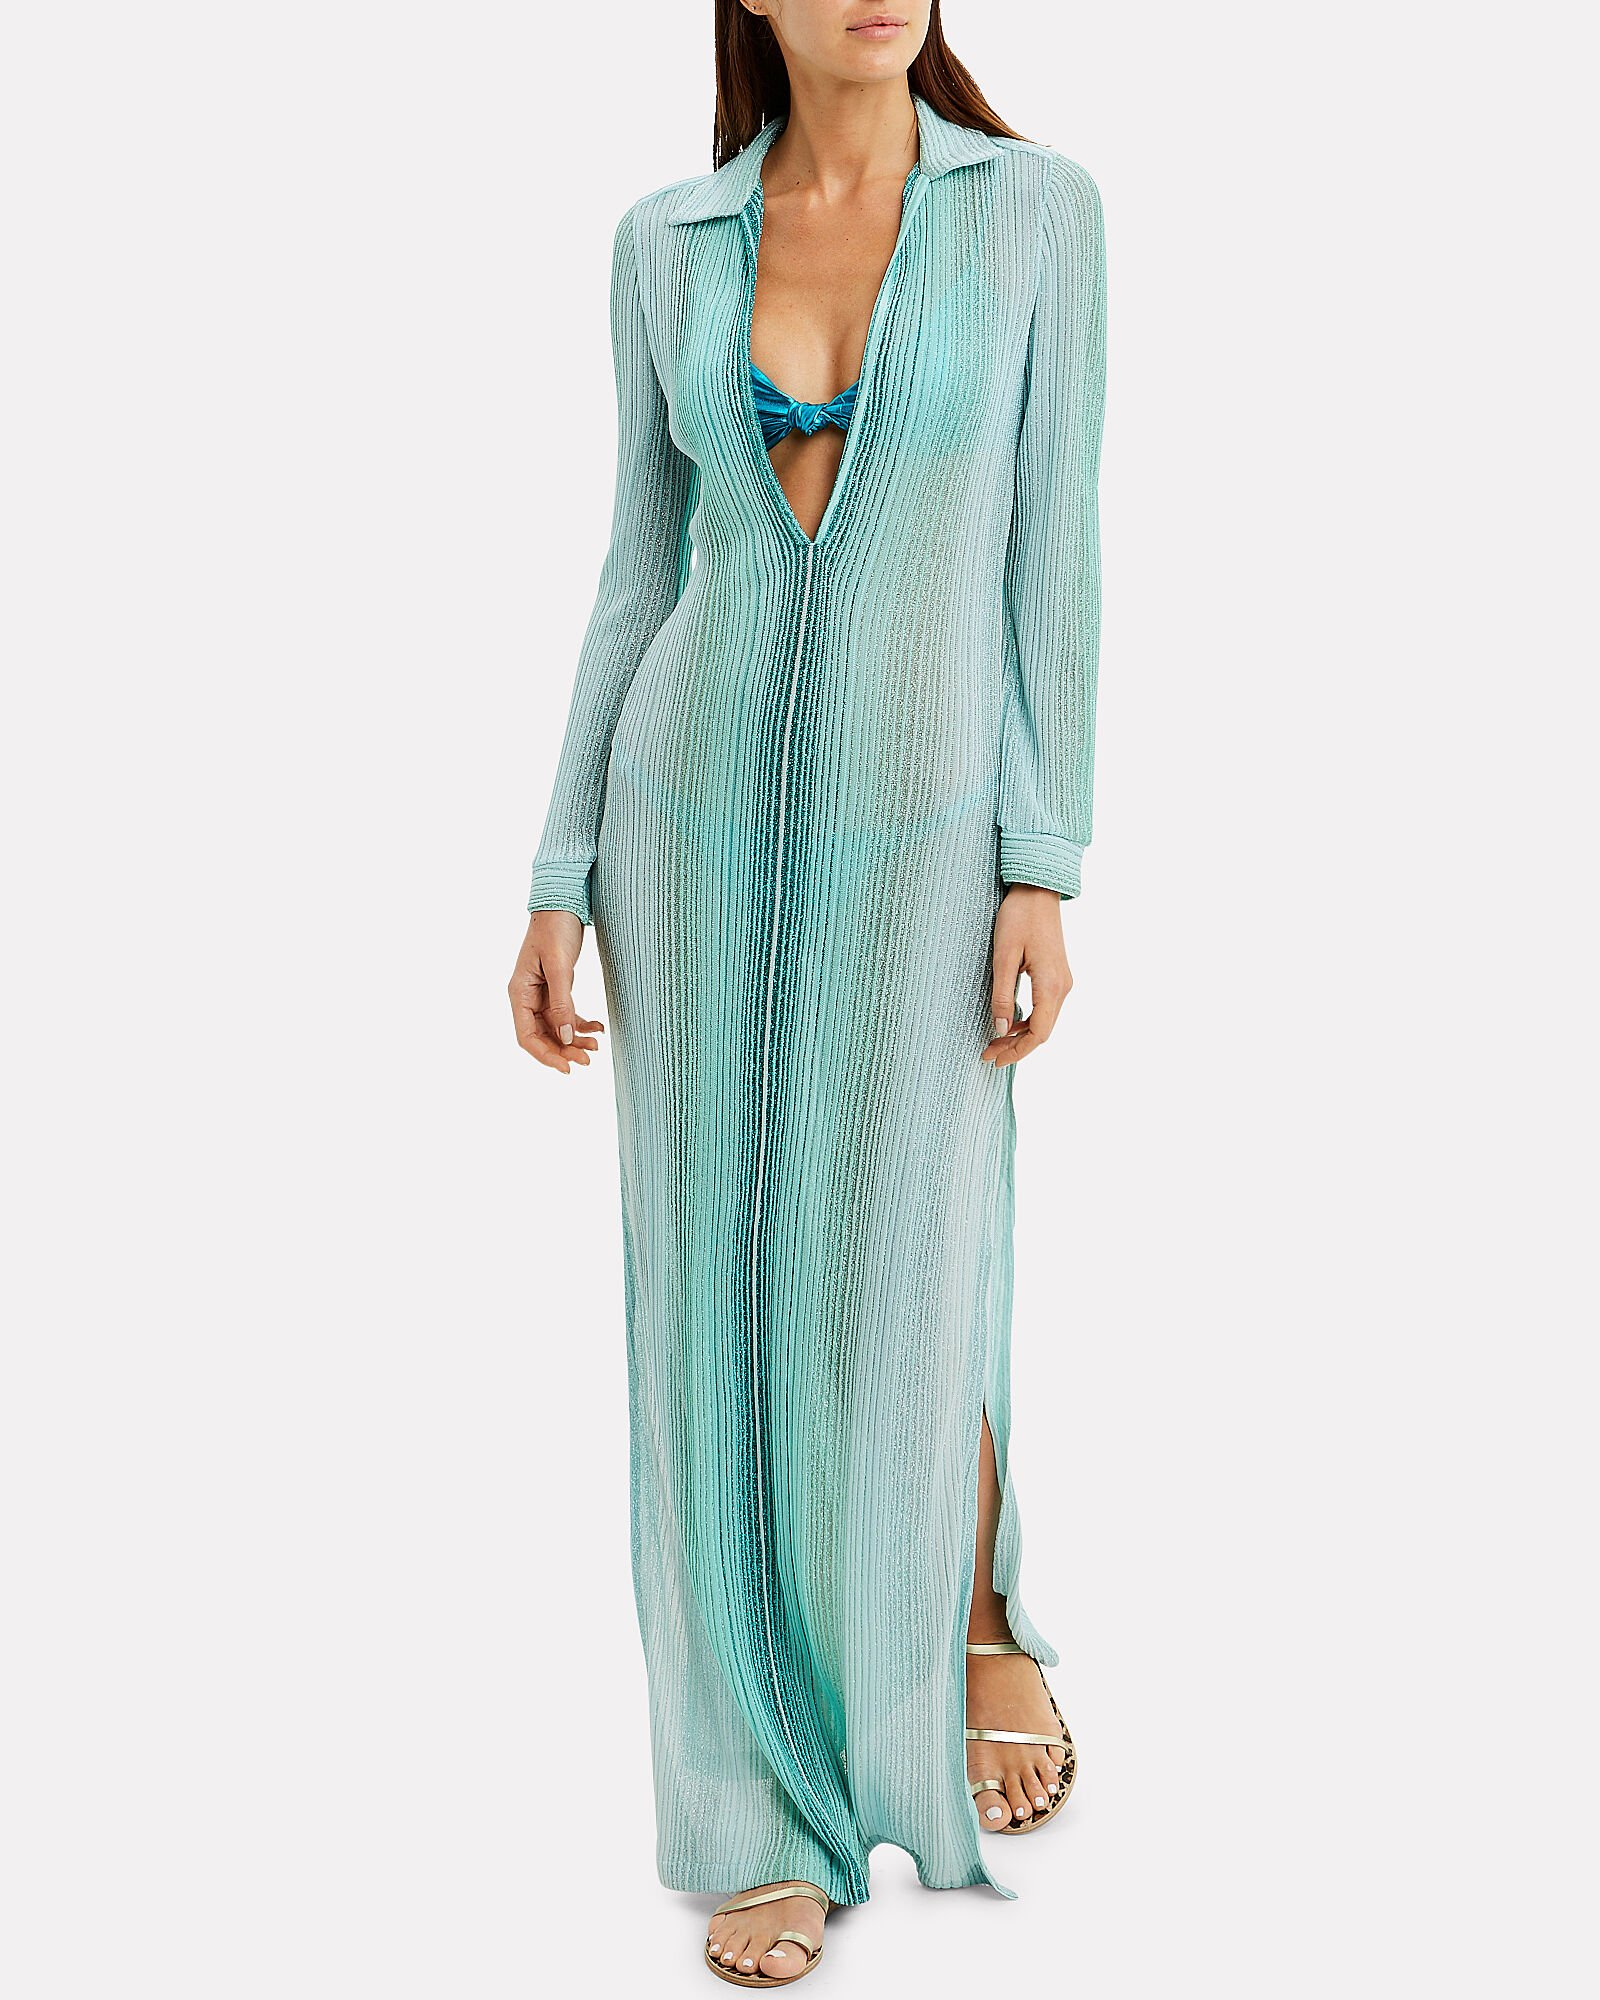 Lurex Striped Cover Up, TURQUOISE/METALLIC, hi-res